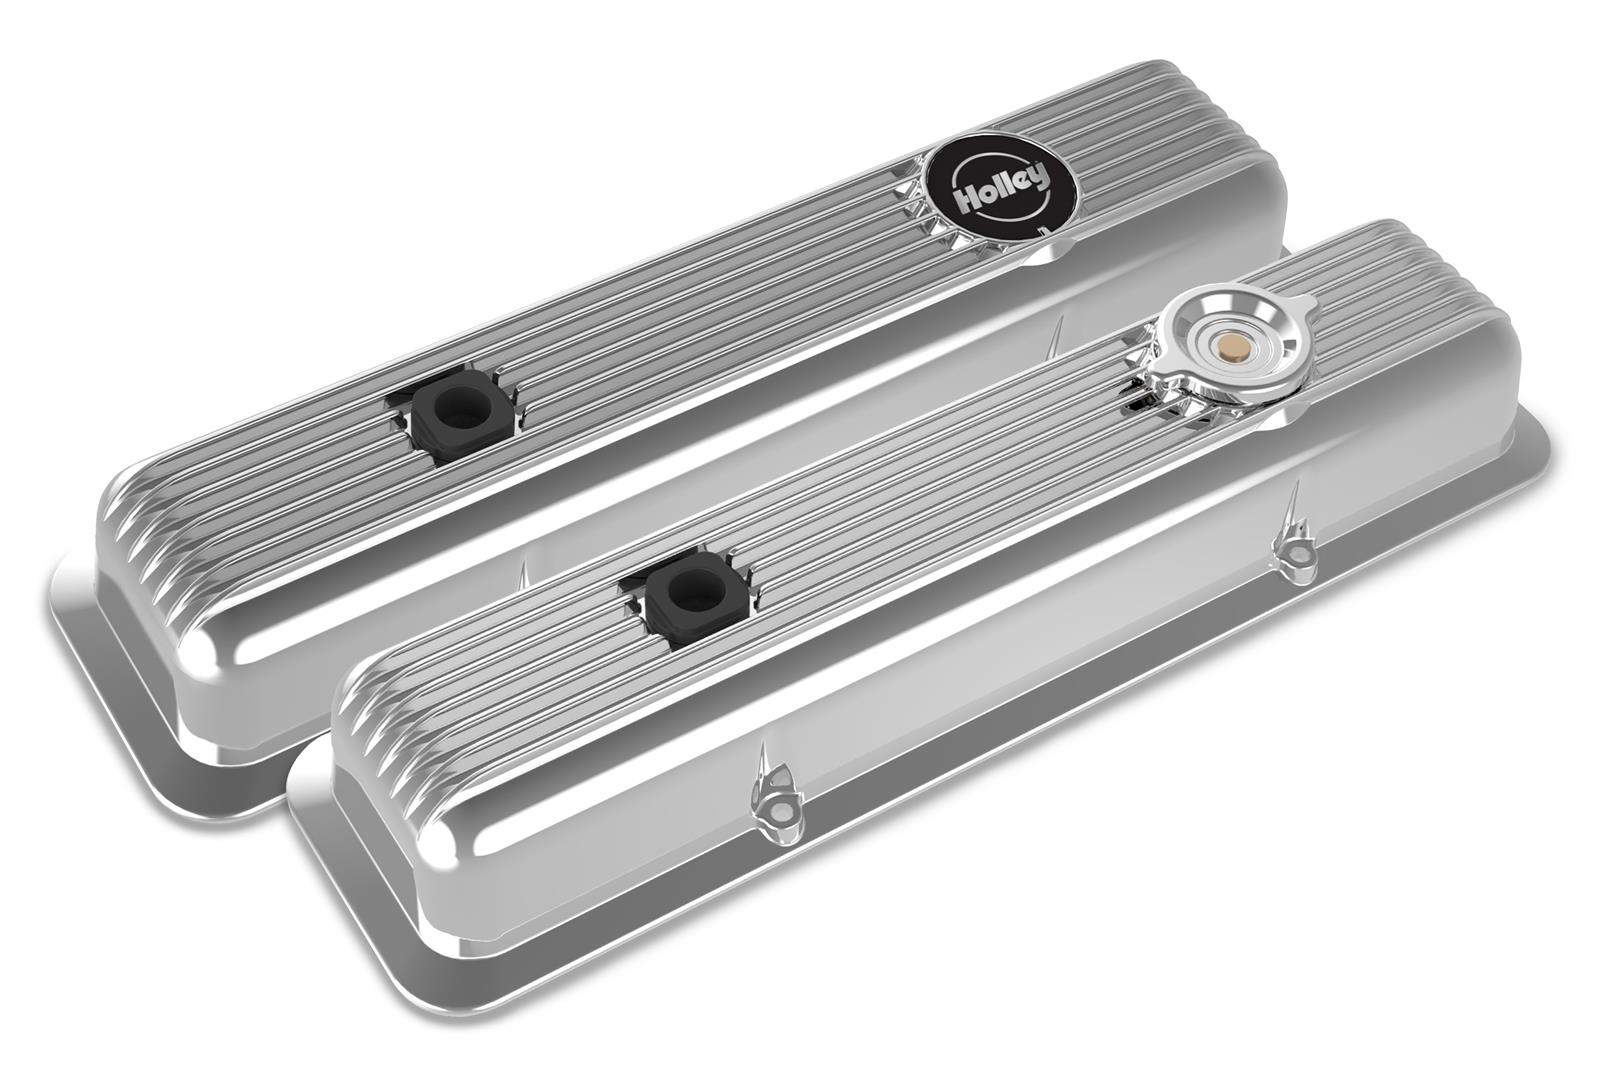 Holley Muscle Series Valve Cover 241 137 Ebay